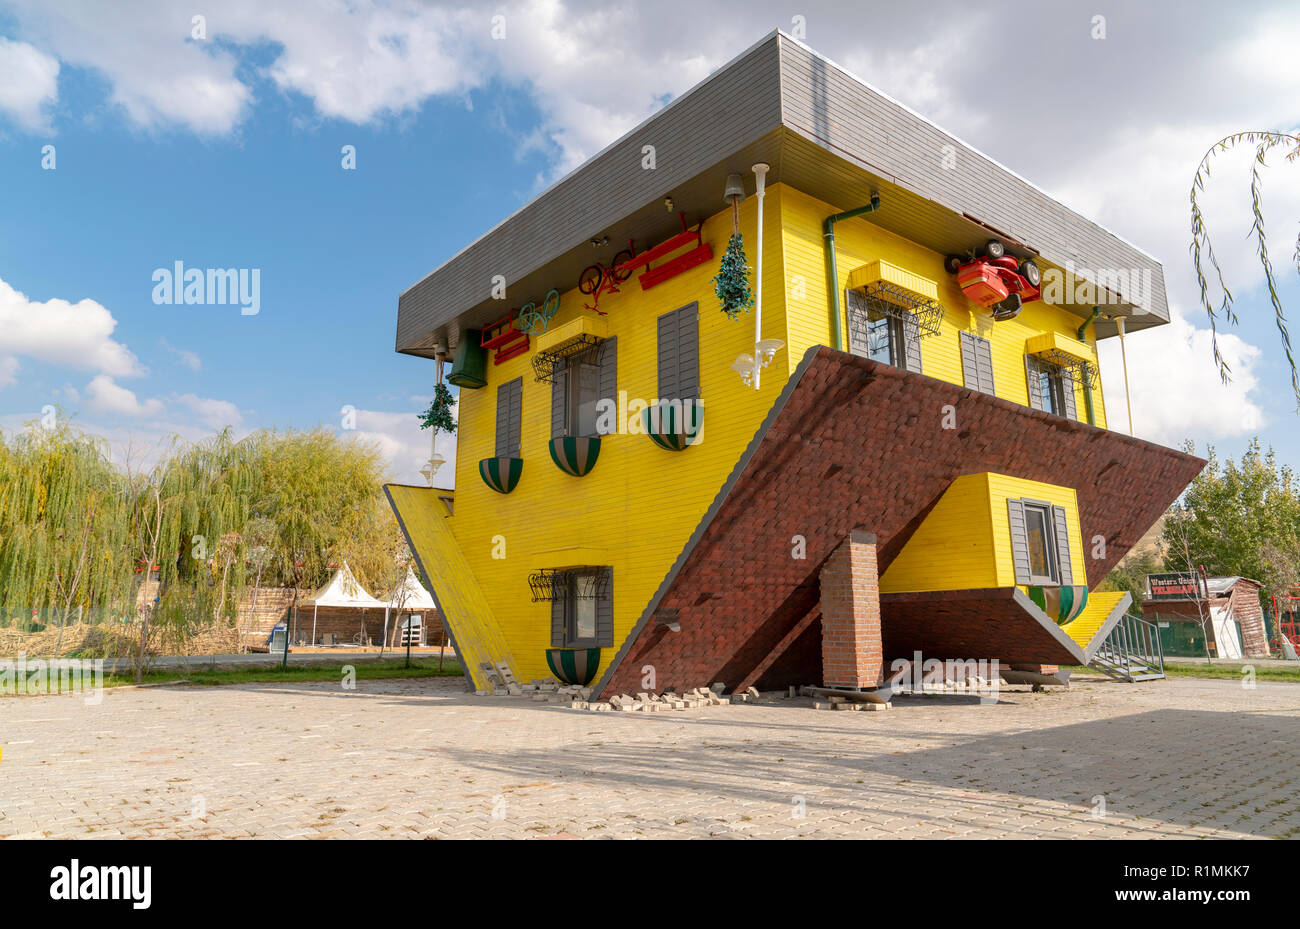 Ankara/Turkey - November 10 2018: Upside down house called tepetaklak ev in Turkish - Stock Image